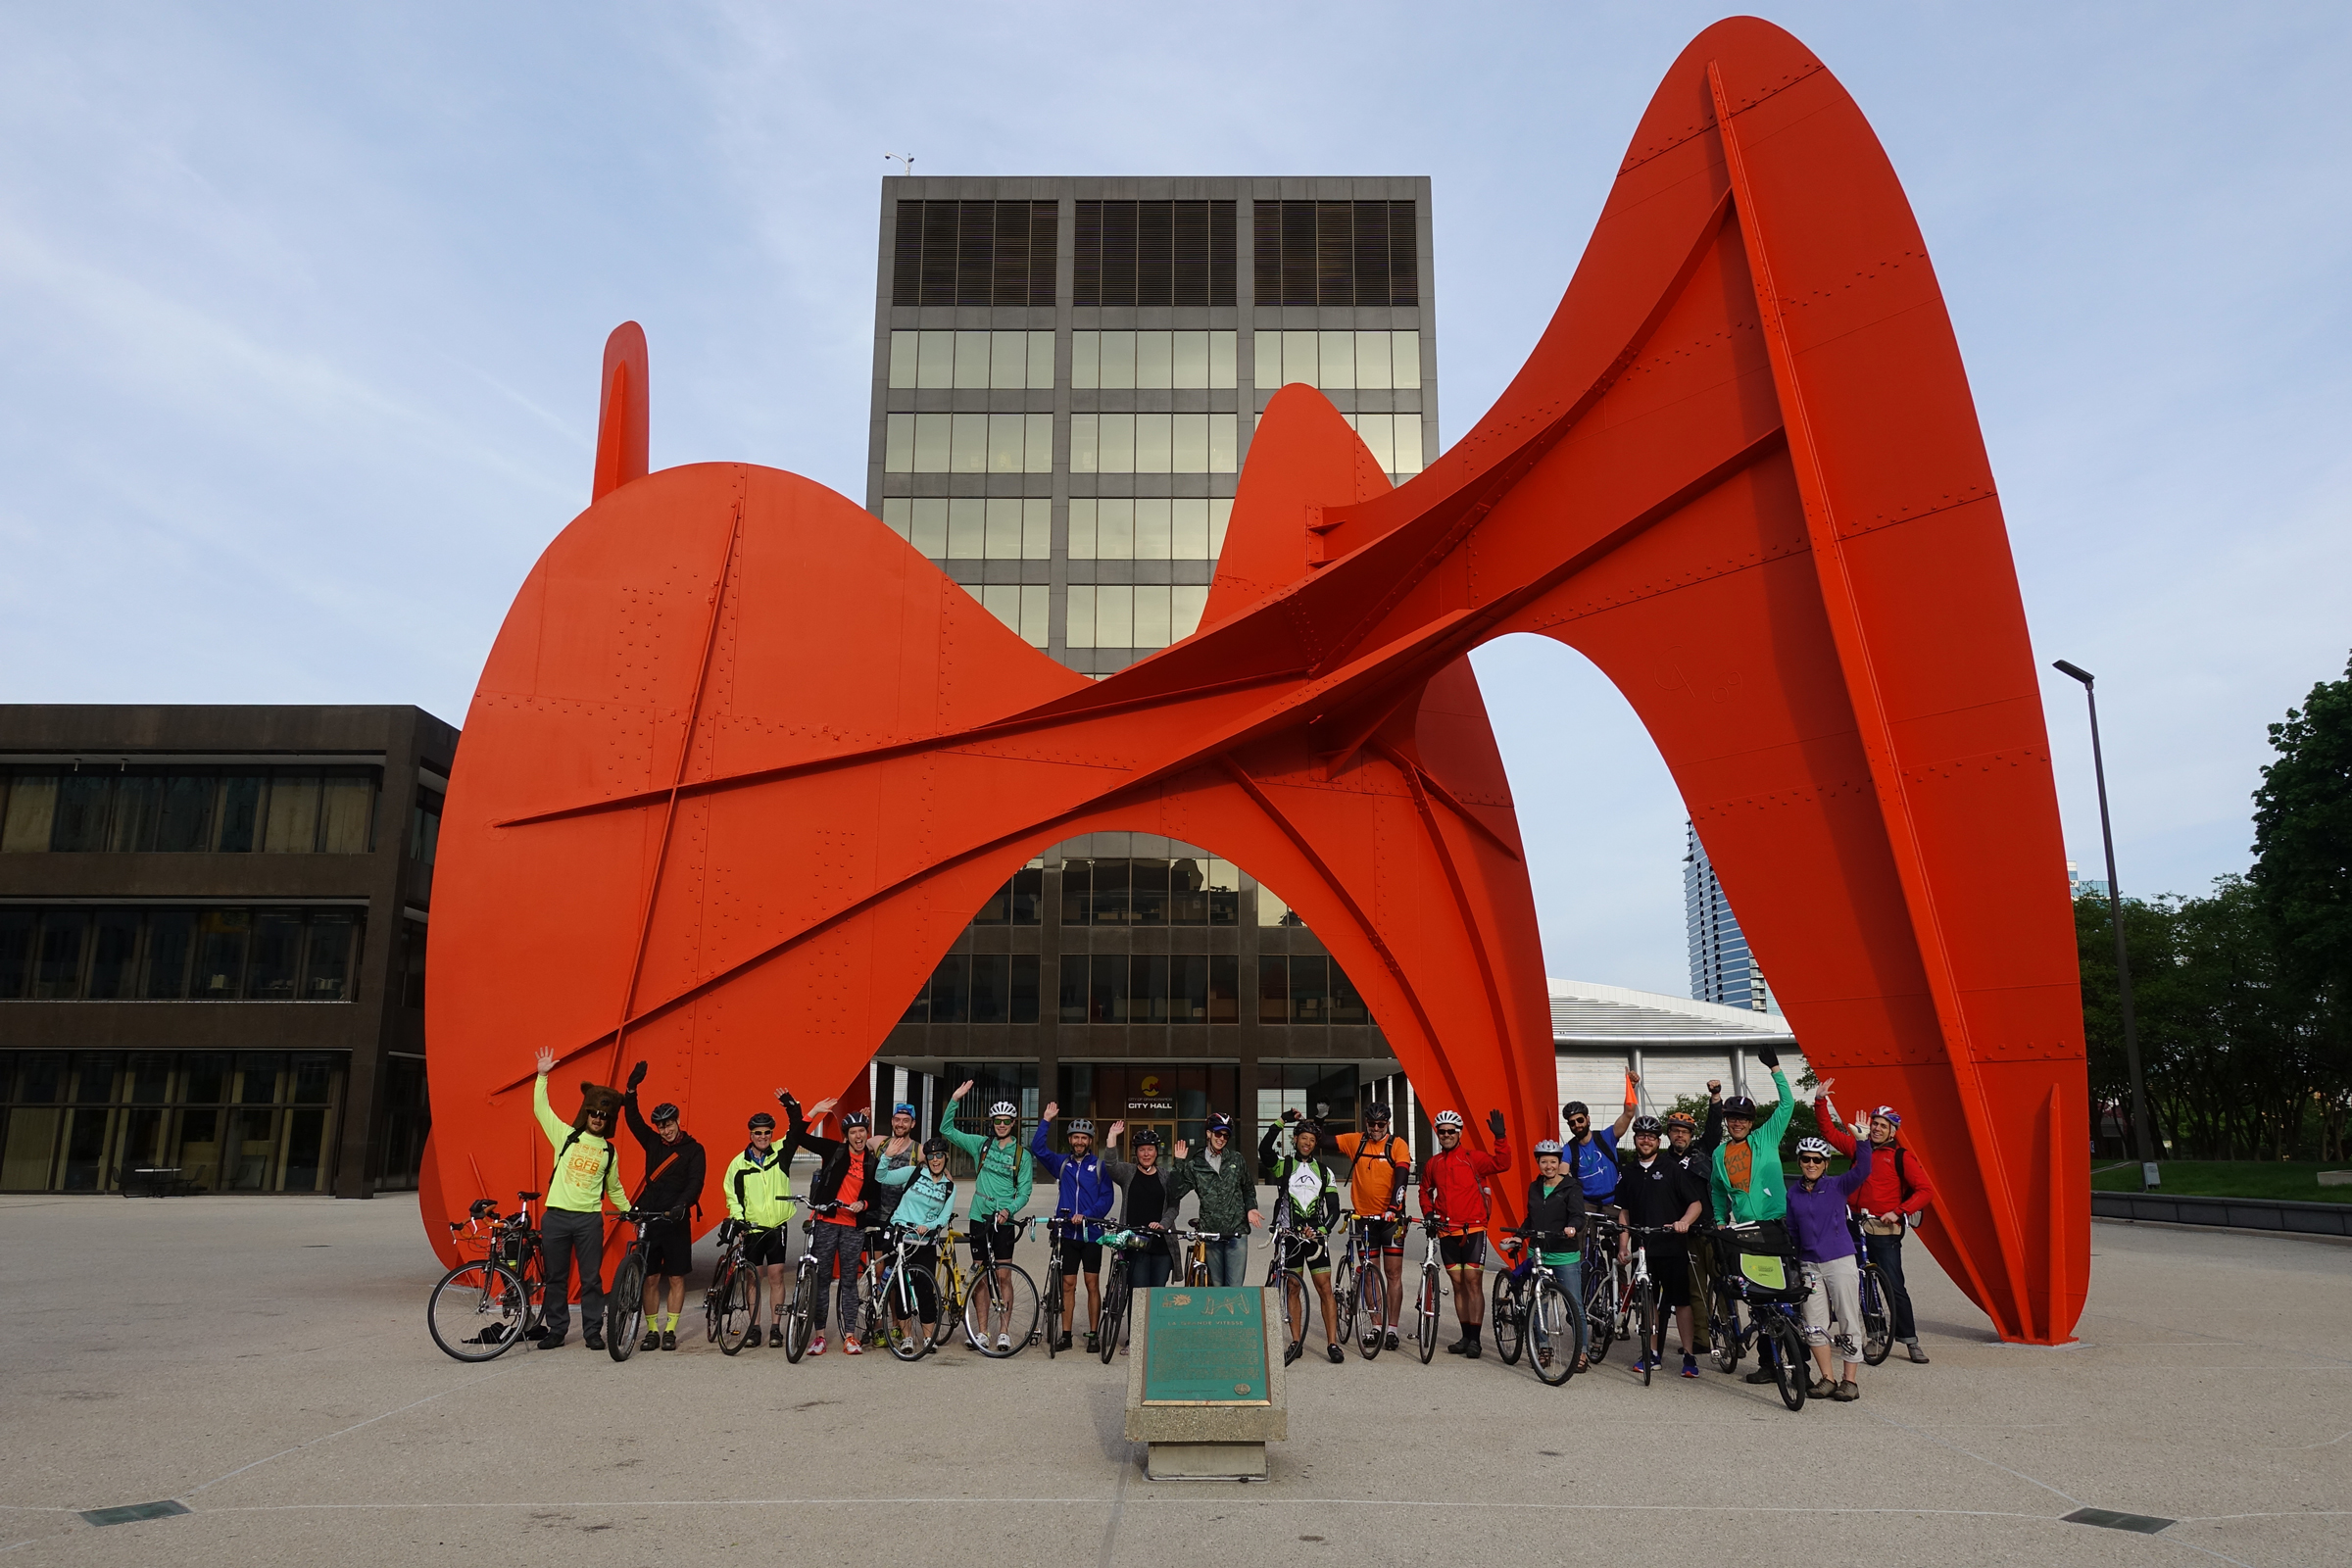 Grand Rapids City Commissioners will vote on the Bike Action Plan in September.